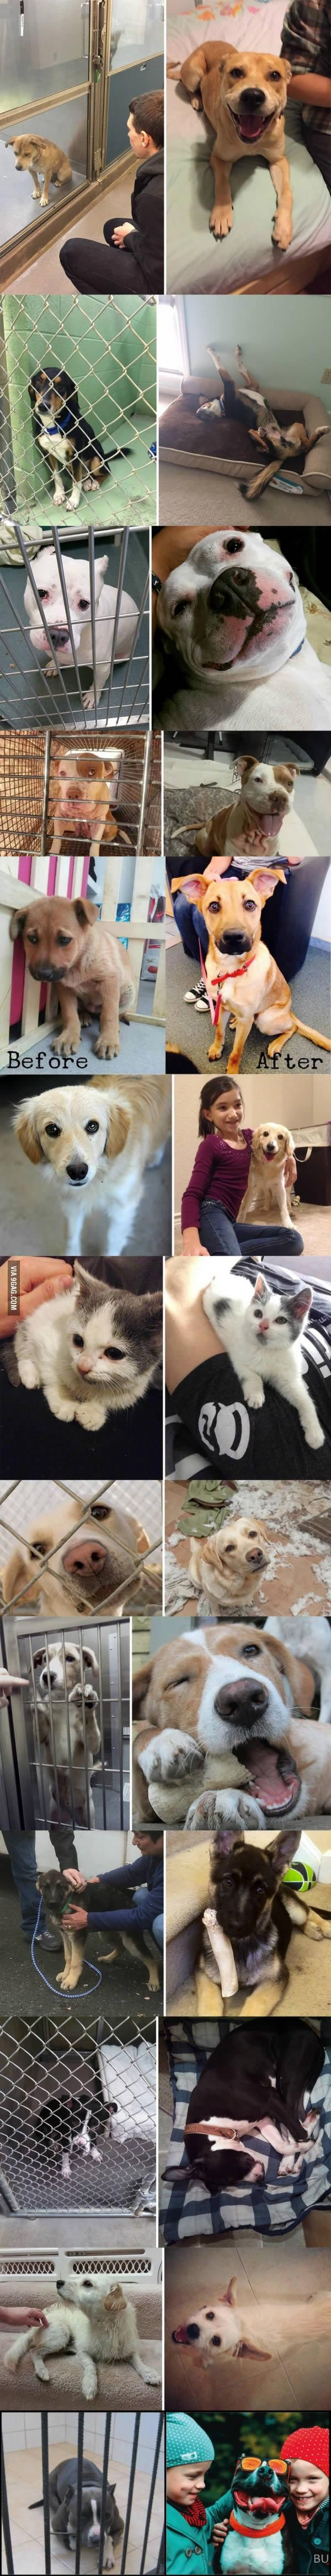 Before and after adoption :) this makes me so happy